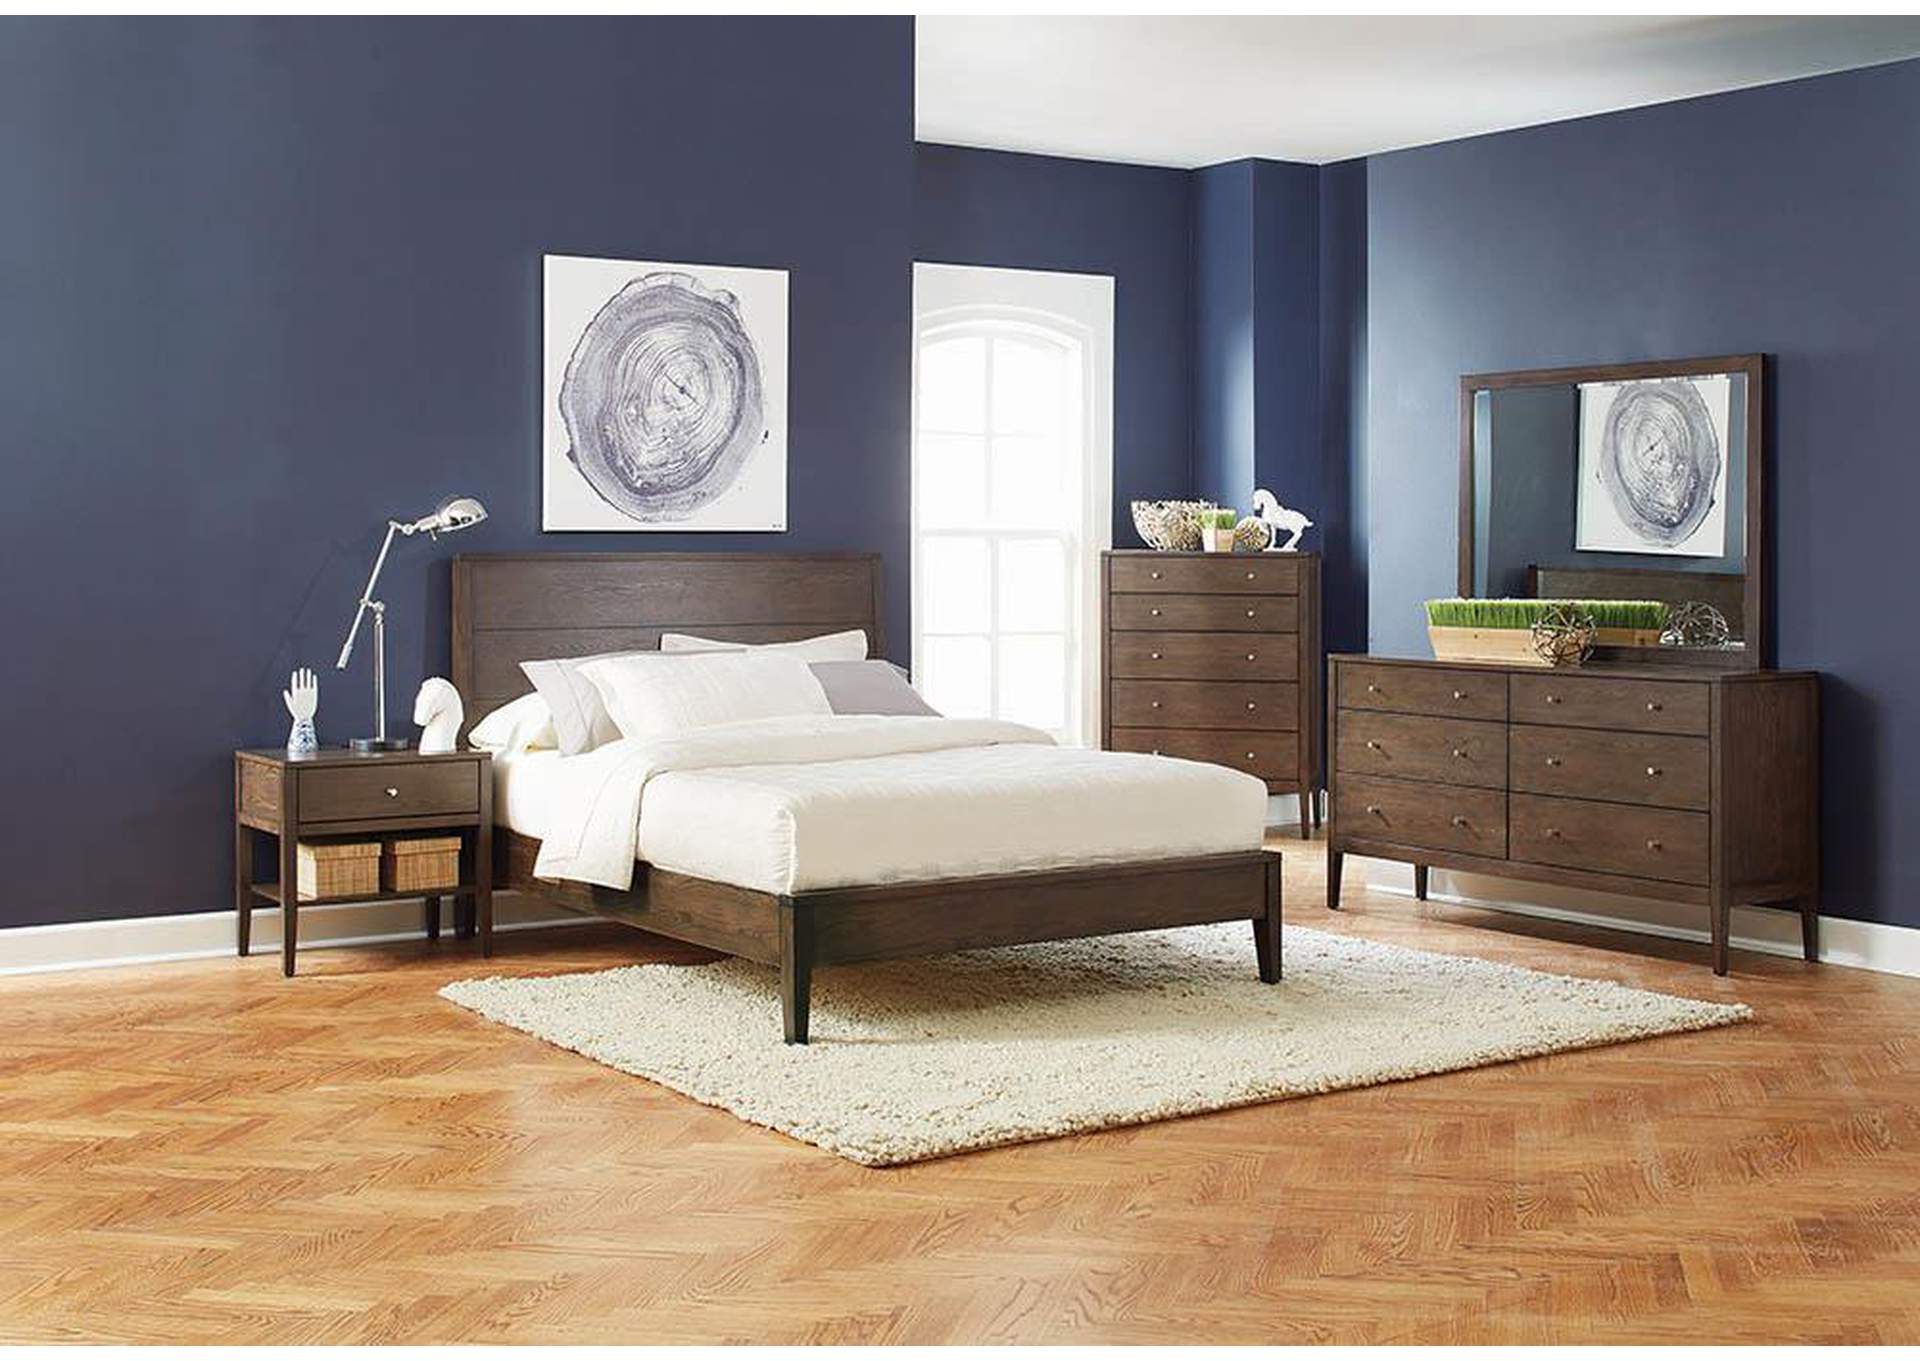 Lompoc Cappiccino Queen Bed,Coaster Furniture